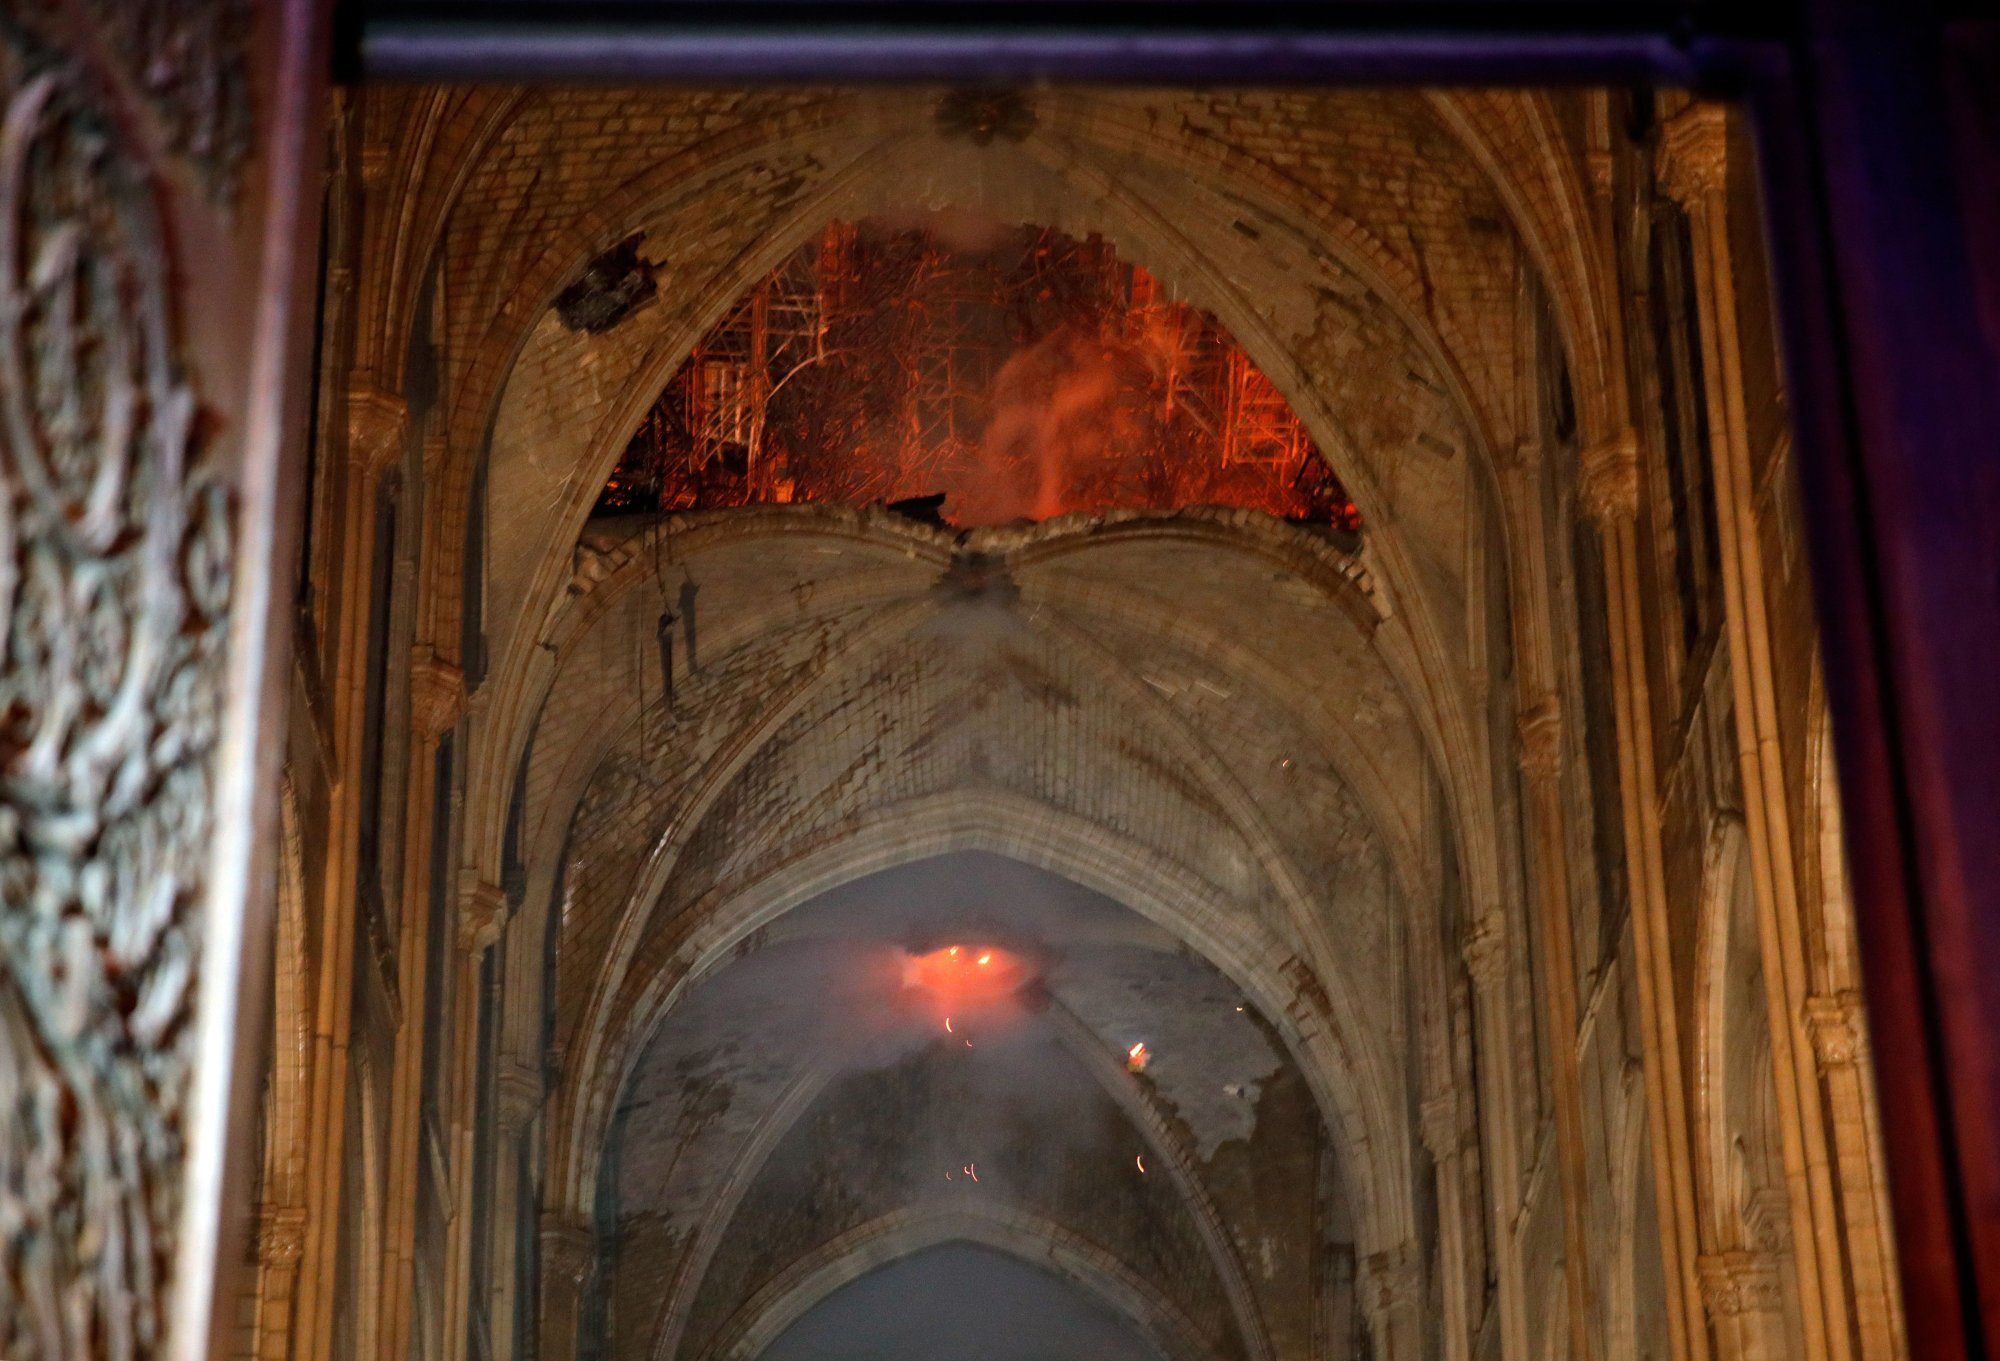 Flames and smoke are seen as the interior of the Notre-Dame Cathedral continues to burn on April 15, 2019, in the French capital Paris. - A huge fire swept through the roof of the famed Notre-Dame Cathedral in central Paris on April 15, 2019, sending flames and huge clouds of grey smoke billowing into the sky. The flames and smoke plumed from the spire and roof of the gothic cathedral, visited by millions of people a year. A spokesman for the cathedral told AFP that the wooden structure supporting the roof was being gutted by the blaze. (Photo by PHILIPPE WOJAZER / POOL / AFP)        (Photo credit should read PHILIPPE WOJAZER/AFP/Getty Images)